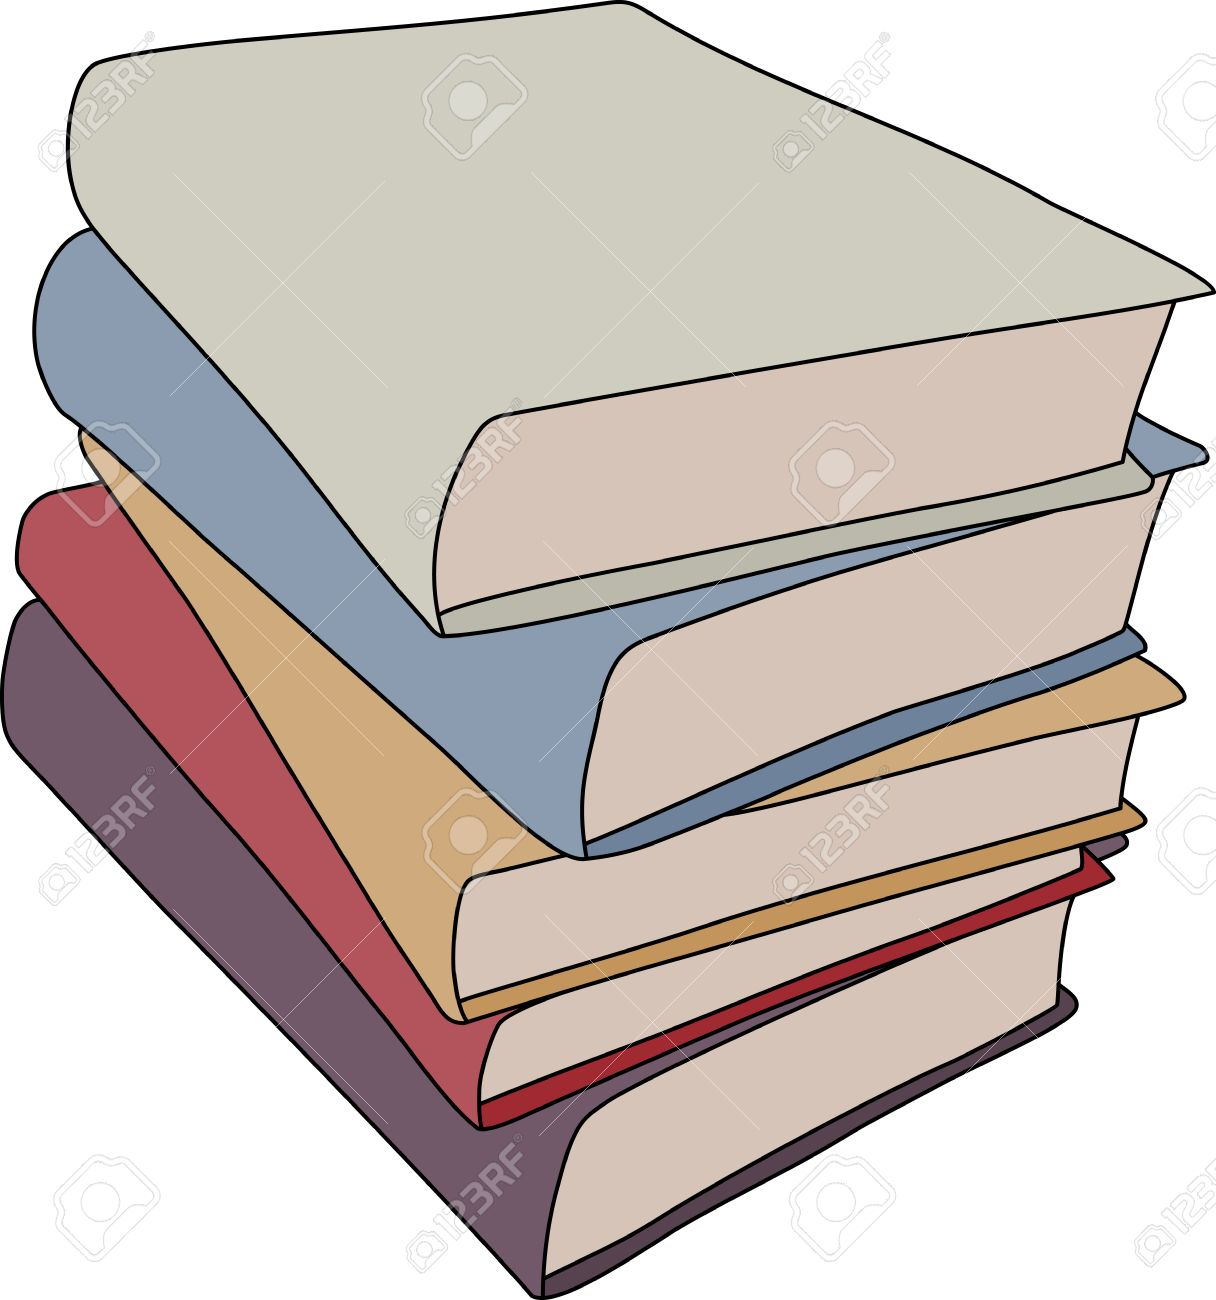 1216x1300 A Simple Cartoon Style Drawing Of A Stack Of Books. This File